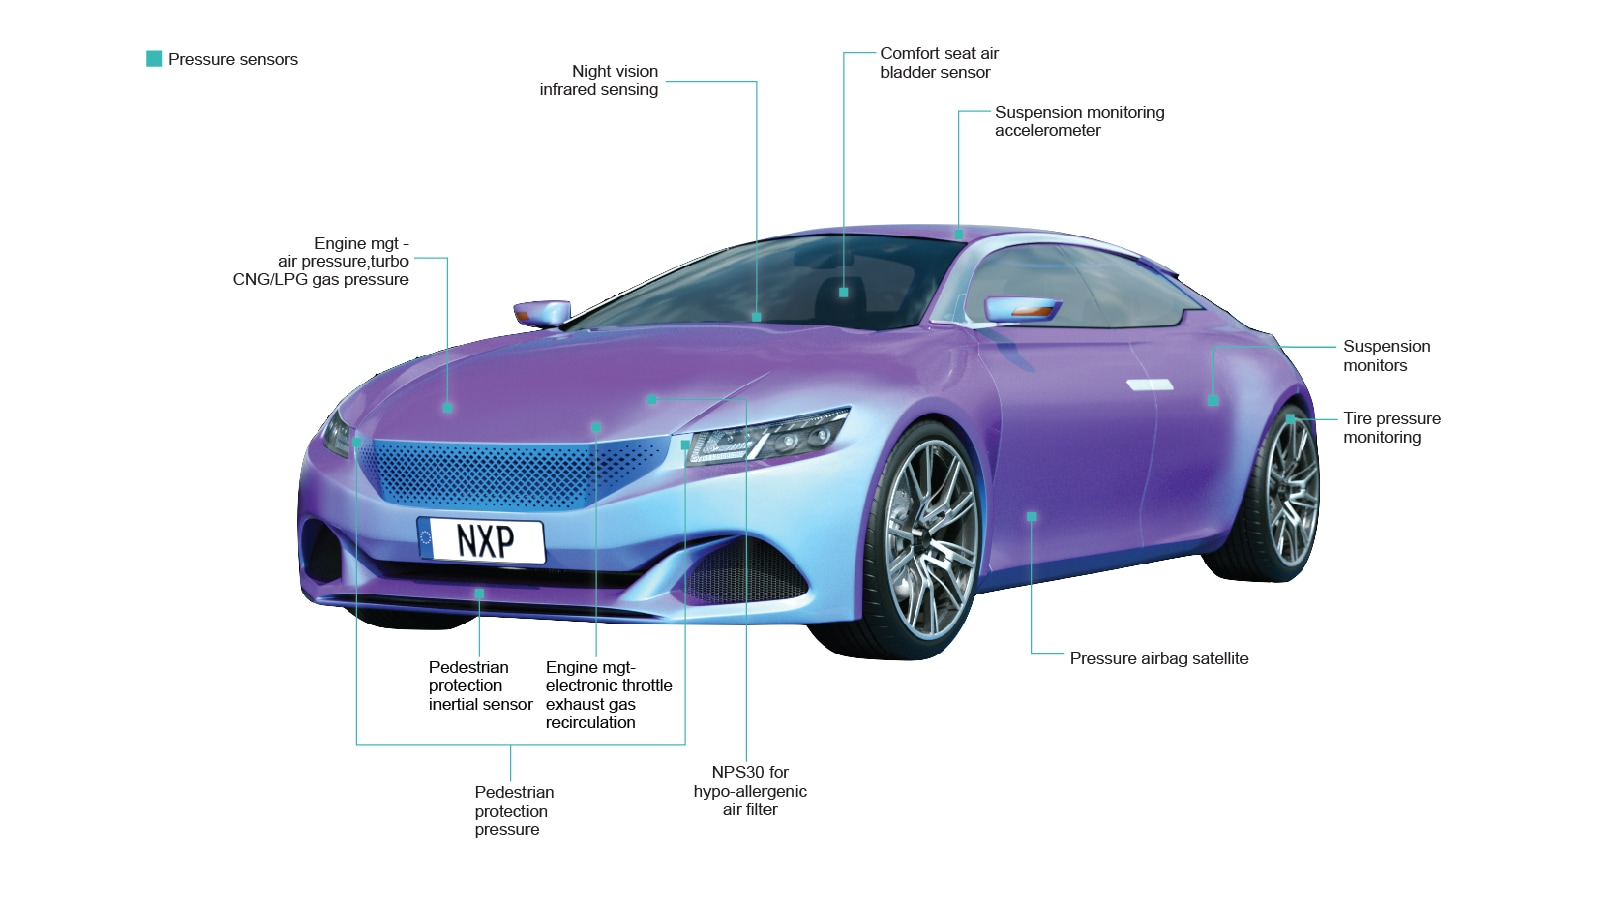 NXP pressure sensors in automotive